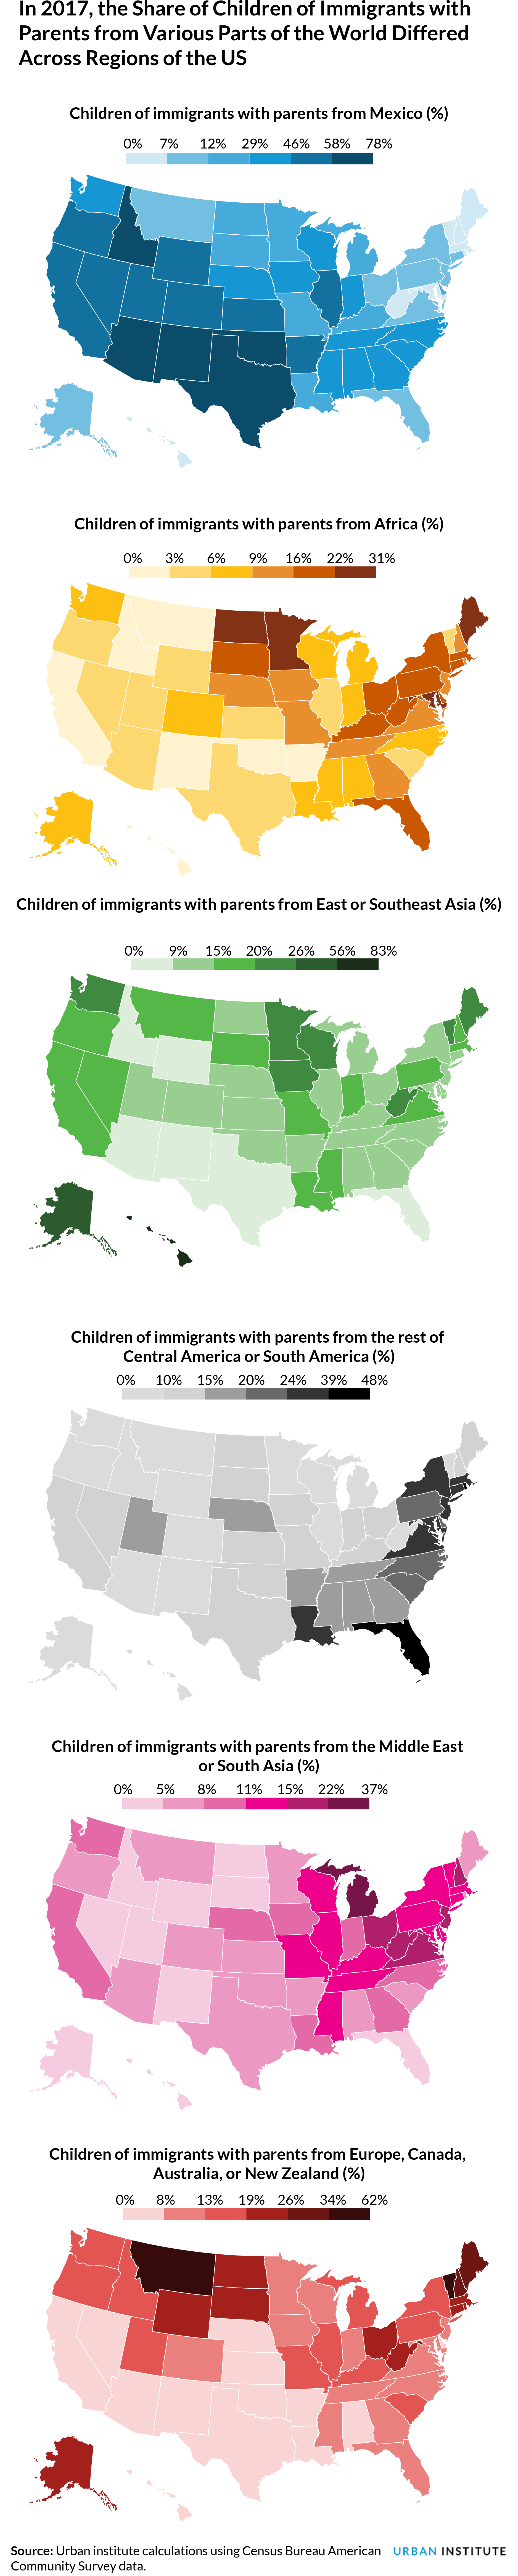 Maps of share of children of immigrants by region